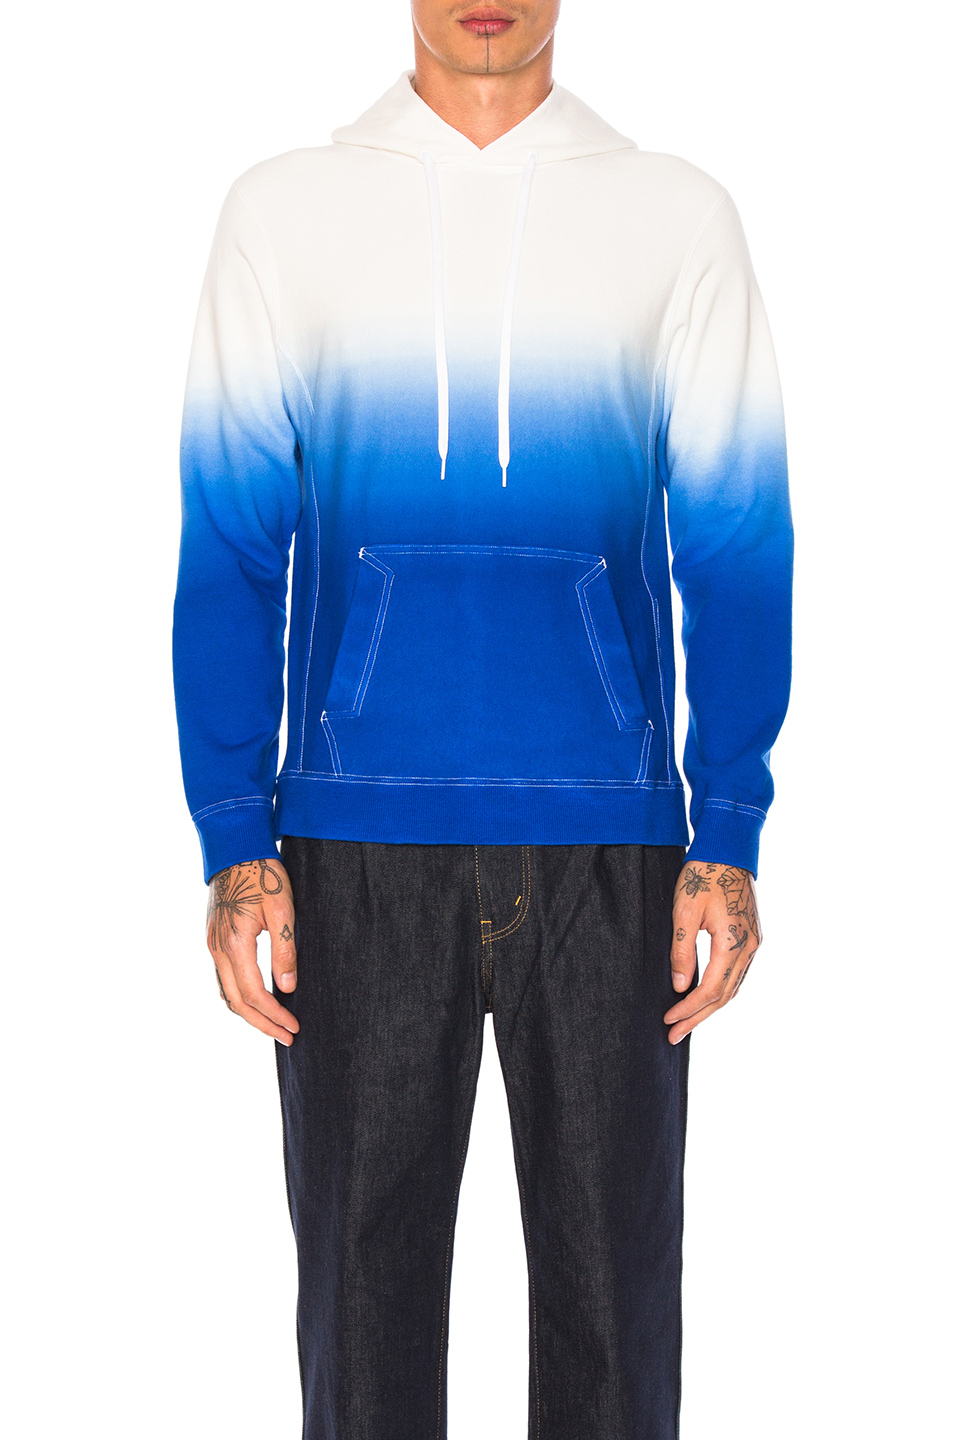 GANRYU Cotton Pile Lined Sweatshirt in Blue,Ombre & Tie Dye